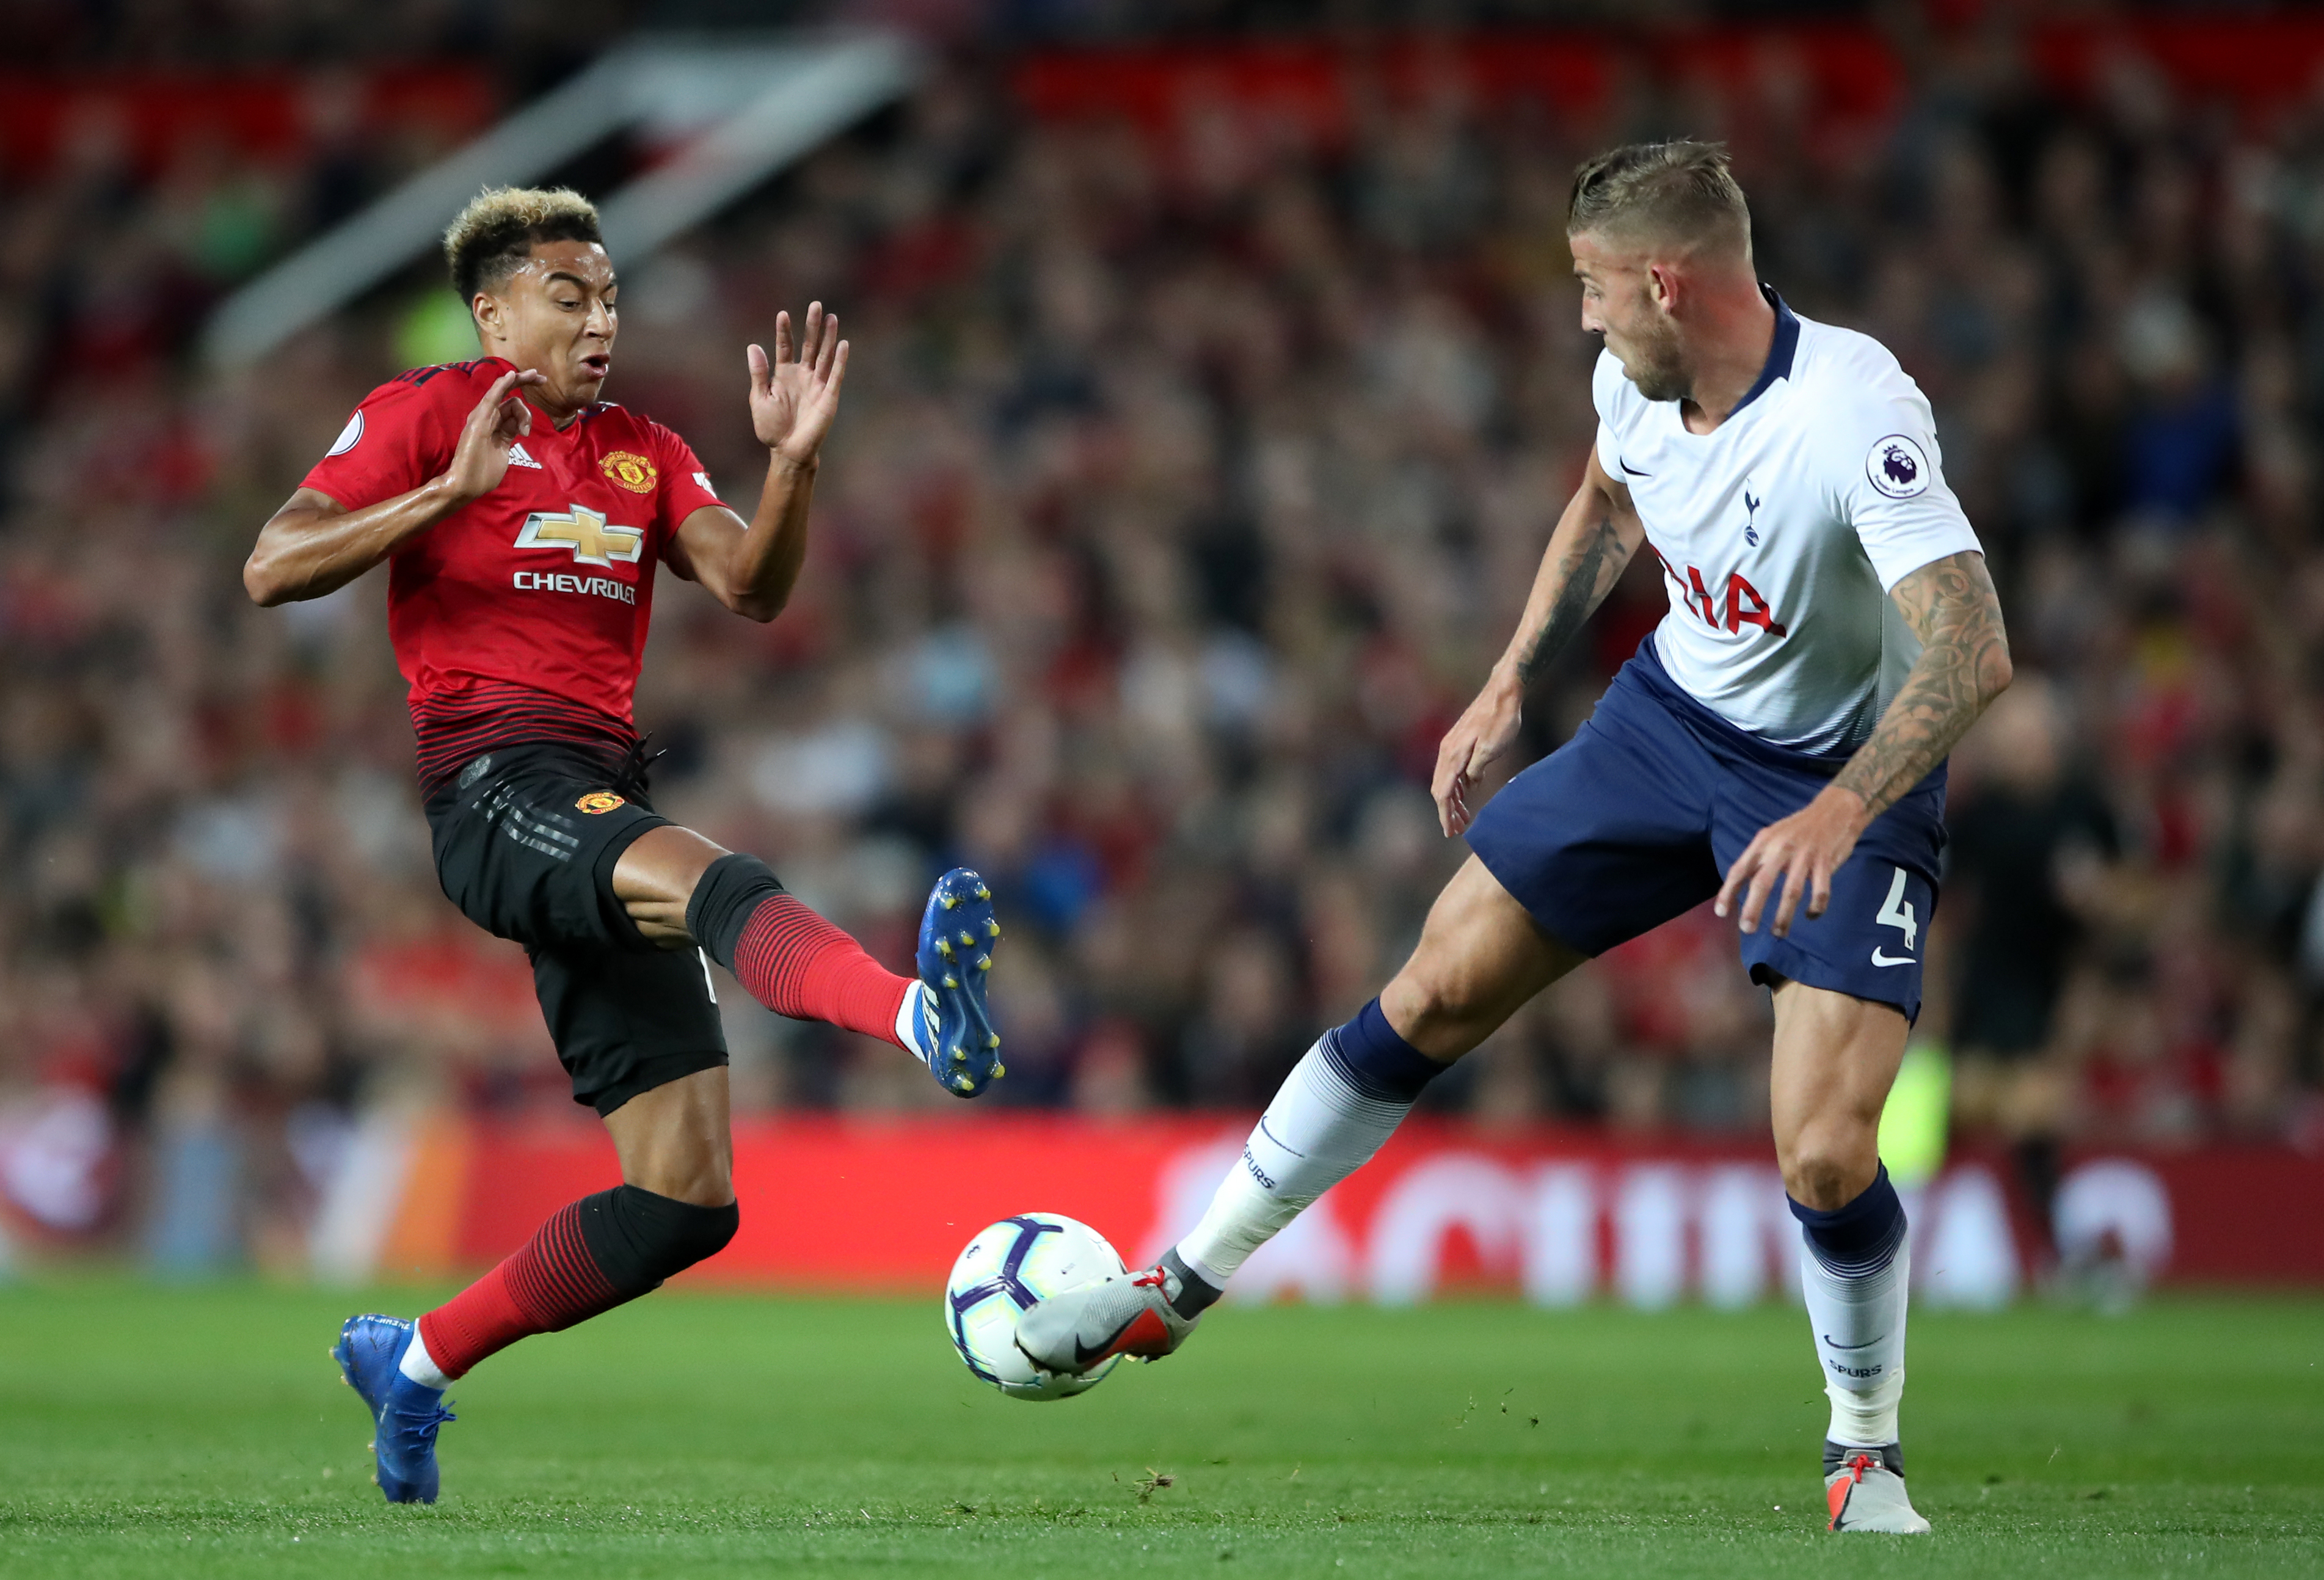 Alderweireld stops Jesse Lingard in the recent game. Image: PA Images